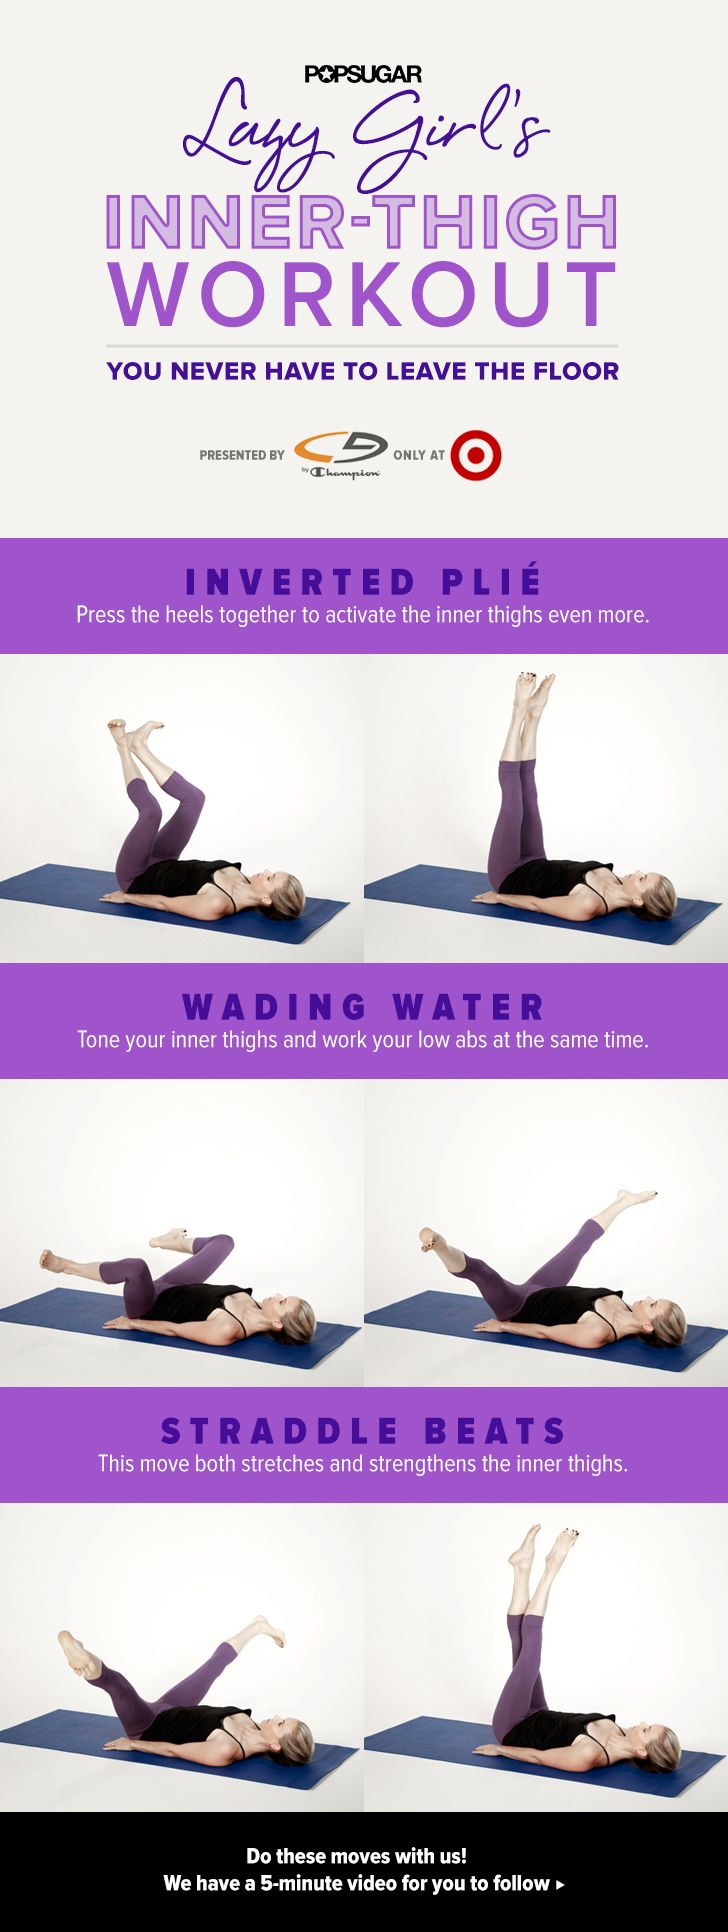 Video showing Pilates moves you can do on the floor to work your inner thighs.